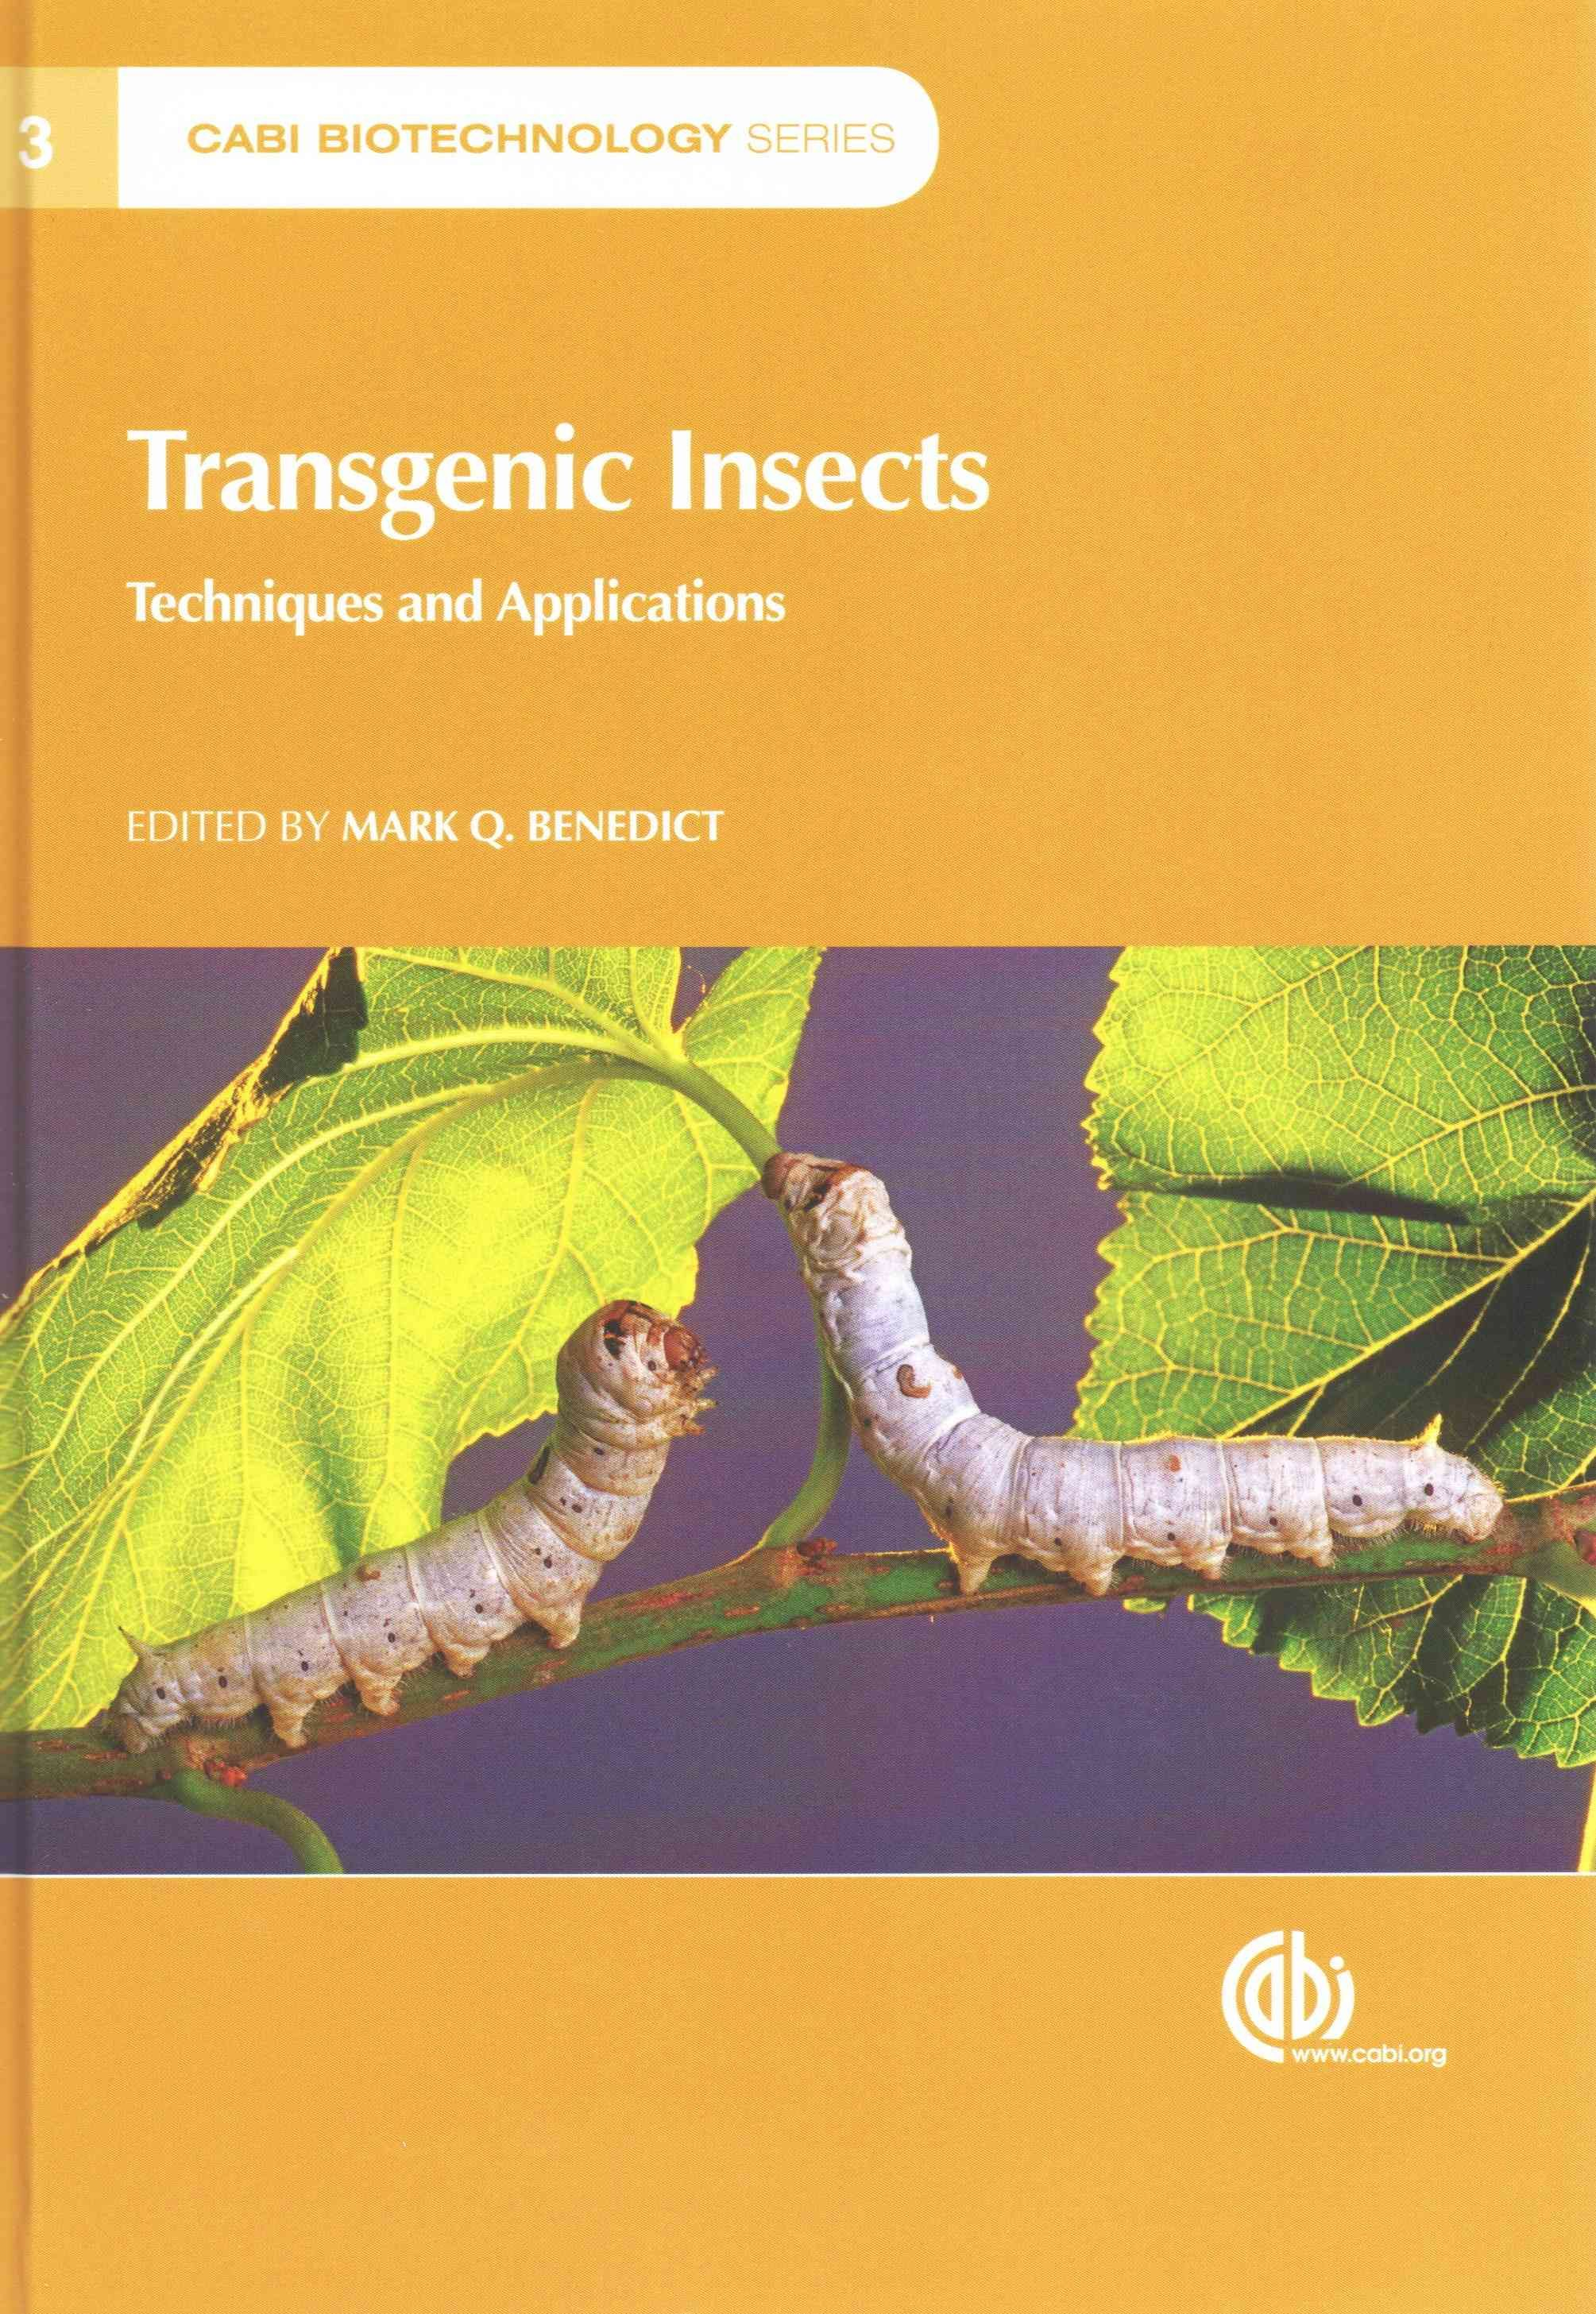 Transgenic Insects: Techniques and Applications